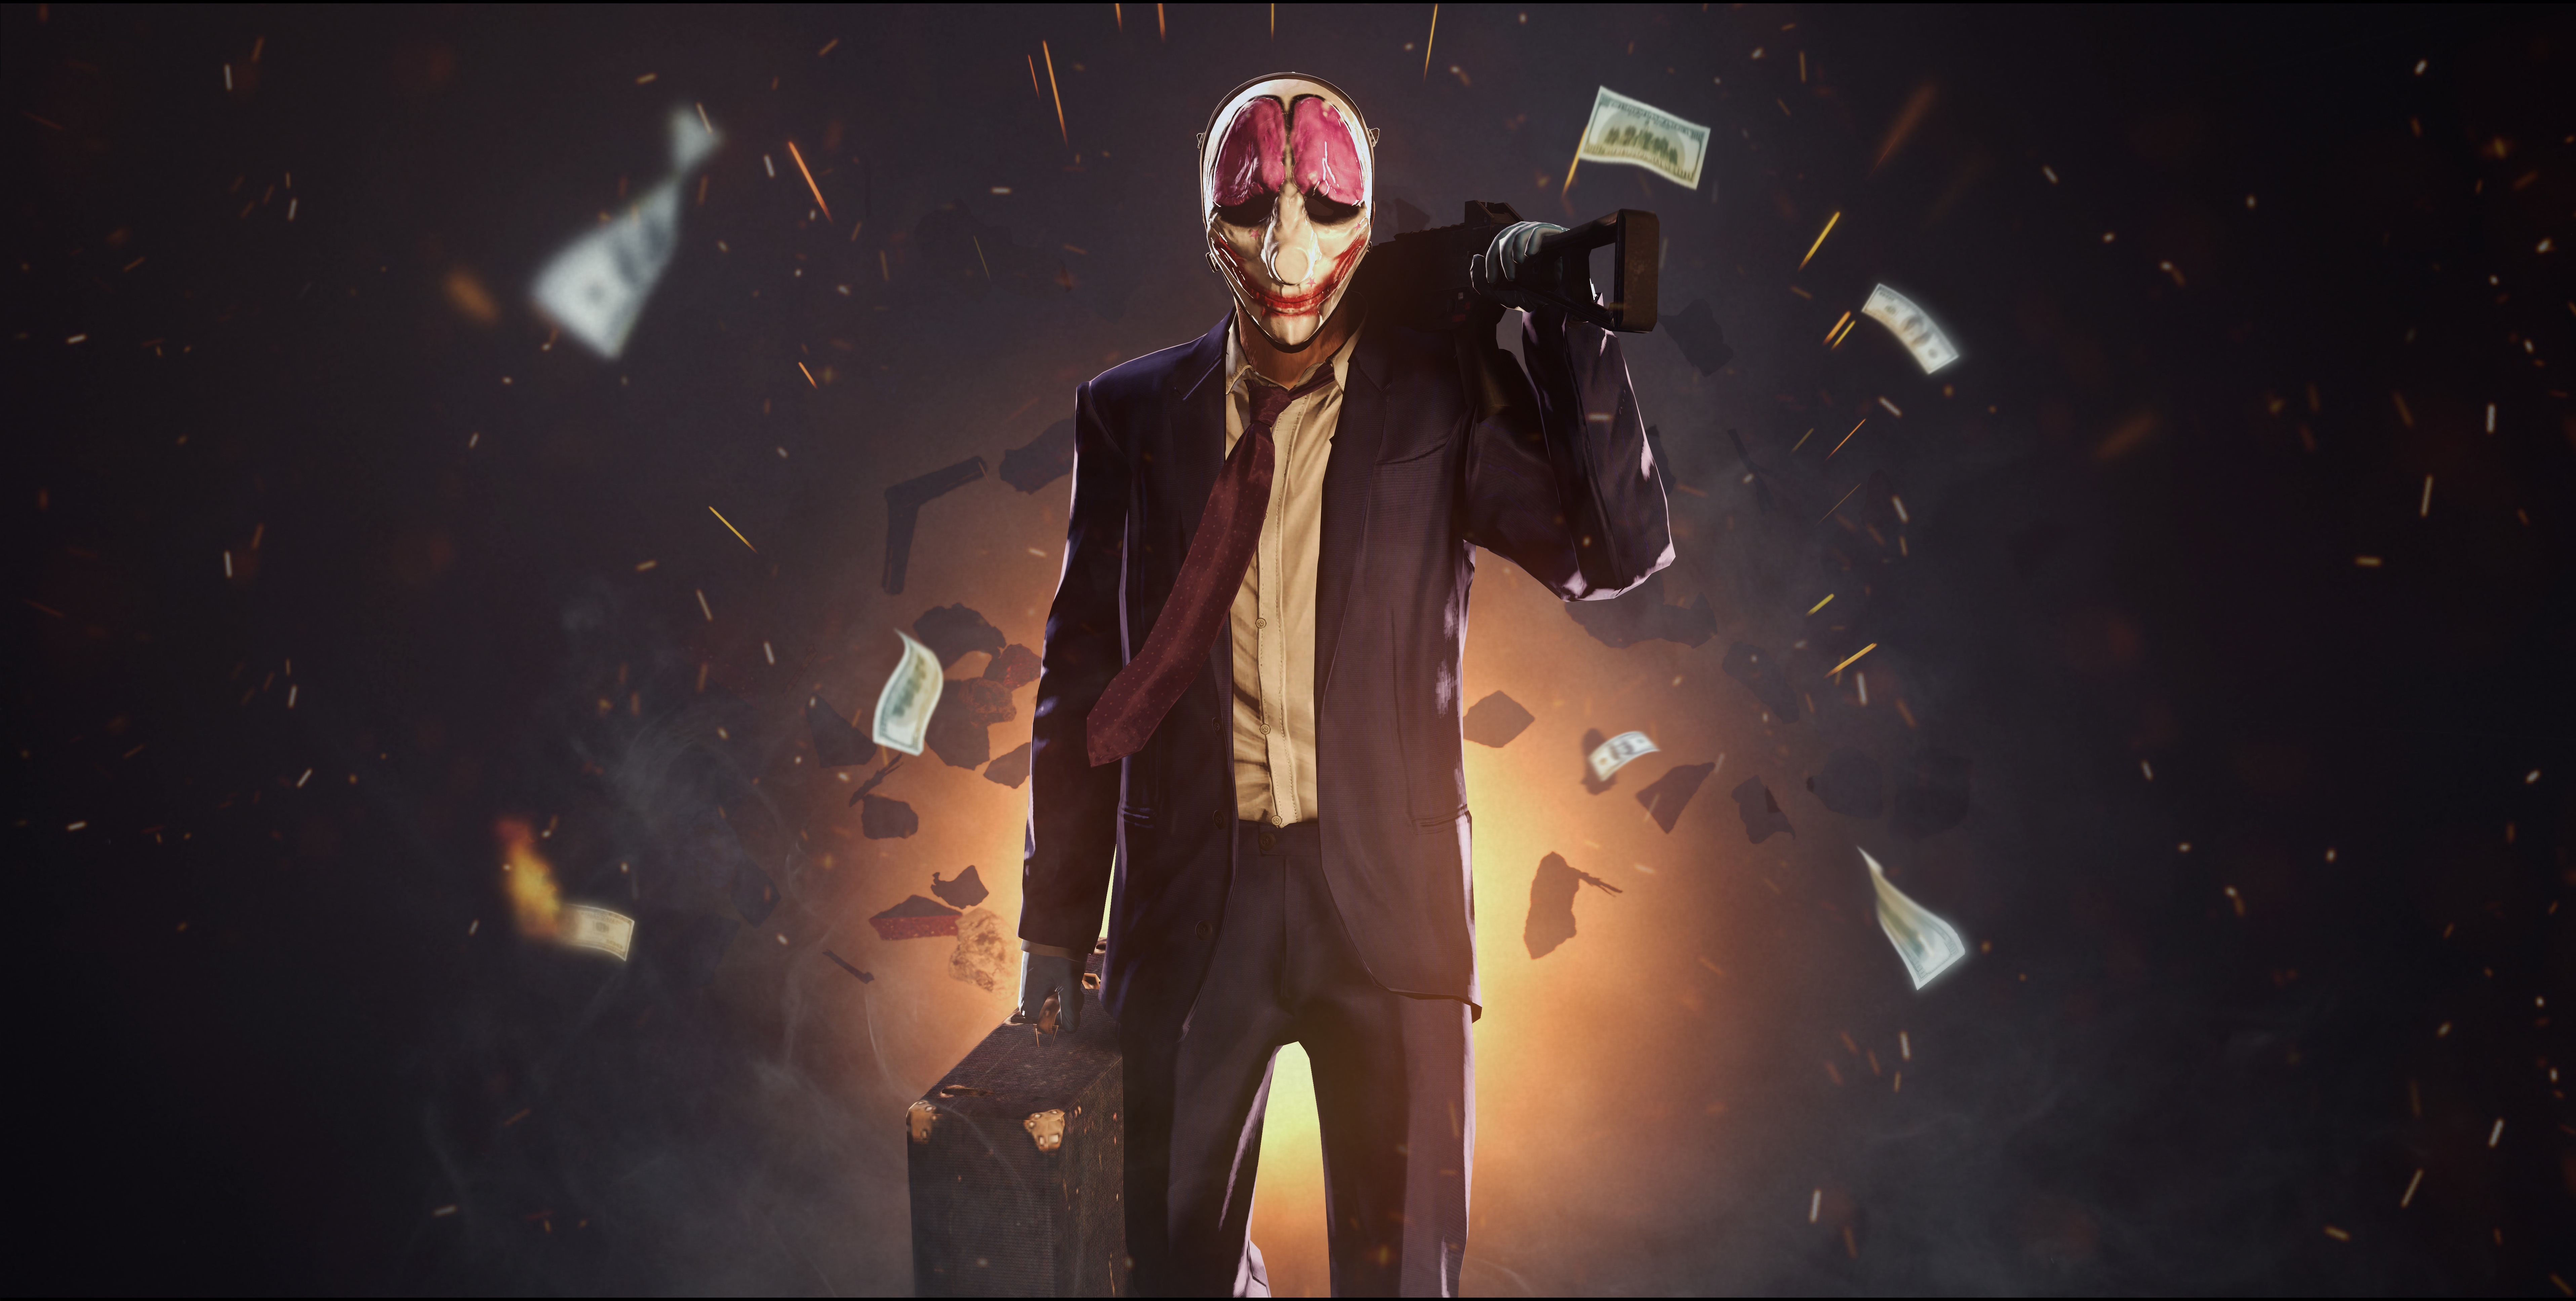 750x1334 payday 2 iphone 6 iphone 6s iphone 7 hd 4k